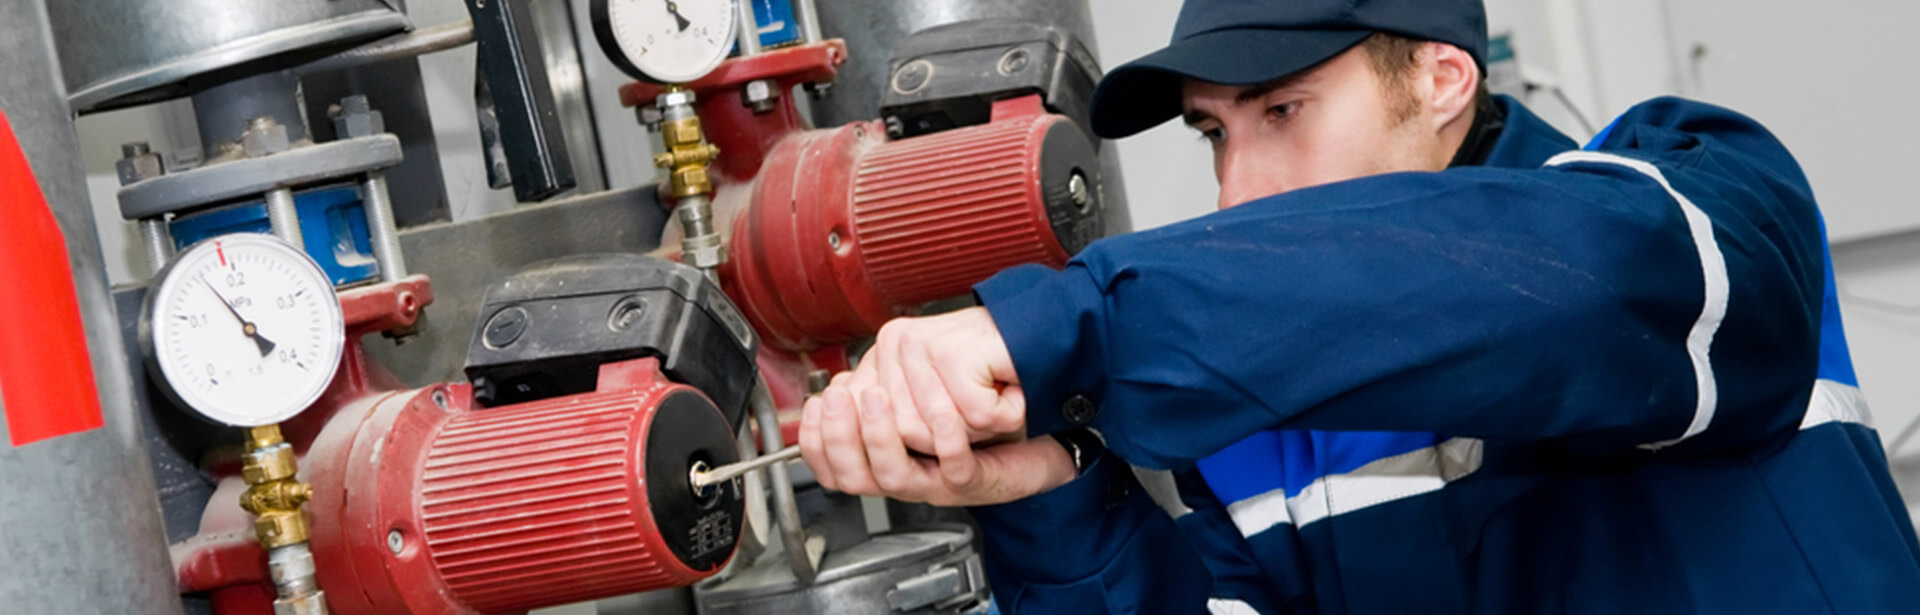 Commercial Mechanical Electrical and Plumbing Services. Trinity Heat Care